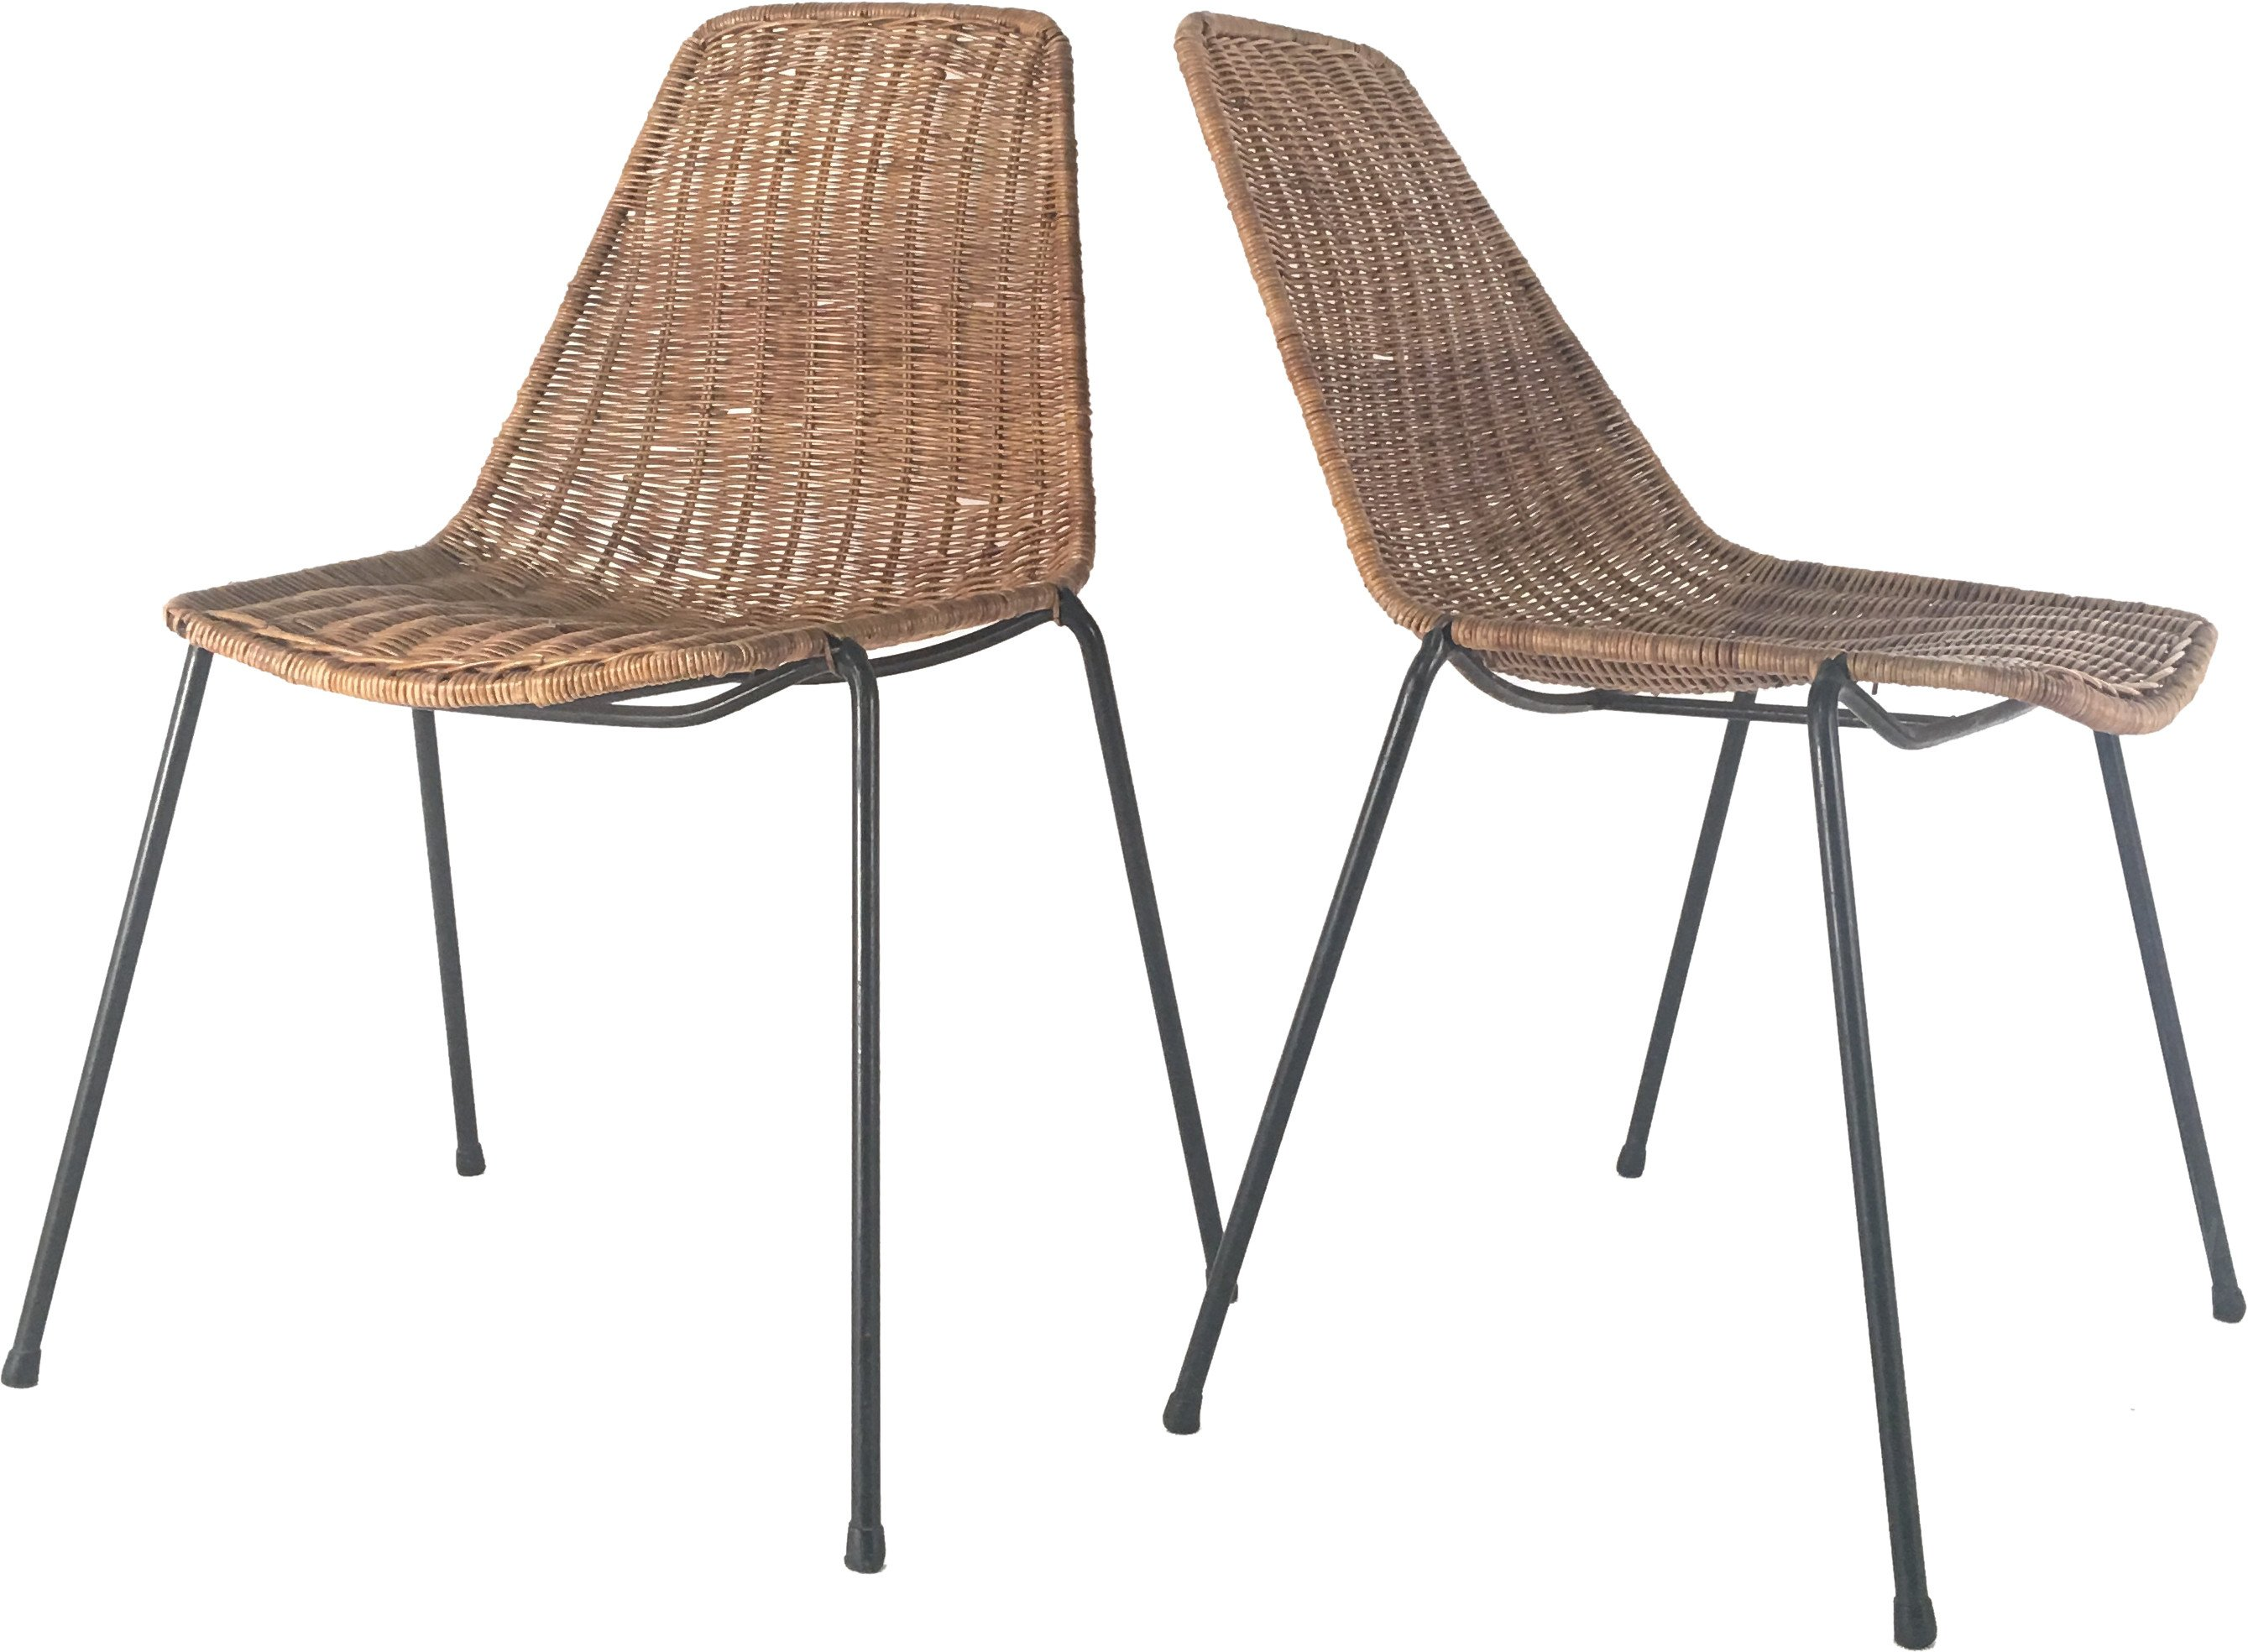 Pair of Chairs by G. F. Legler, Bonacina, 1950s